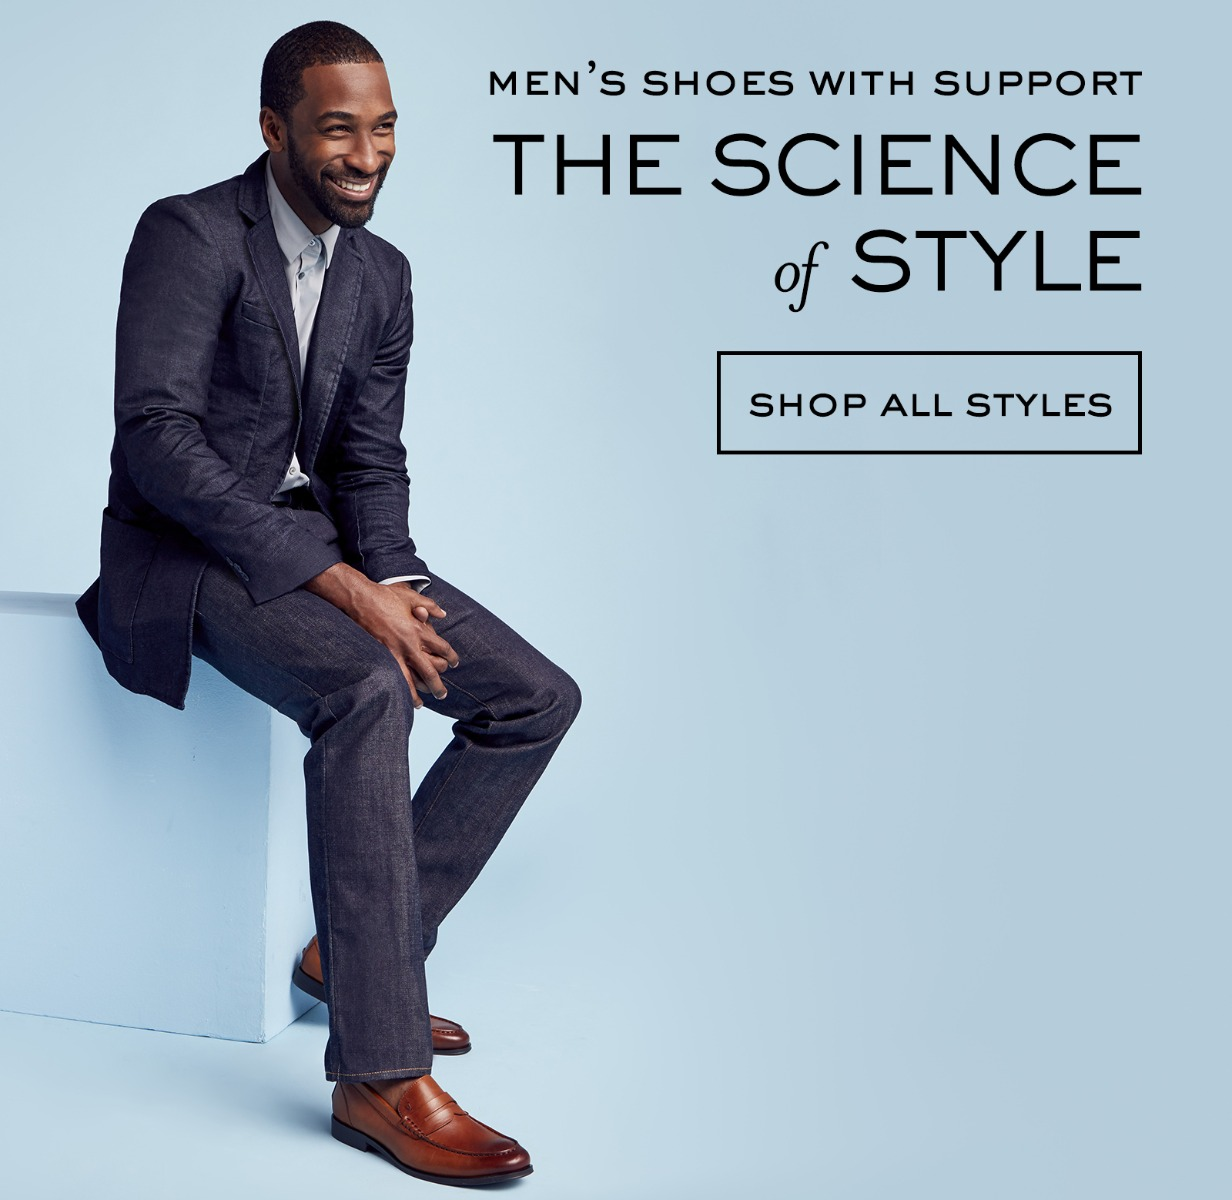 Vionic Men's shoes with support